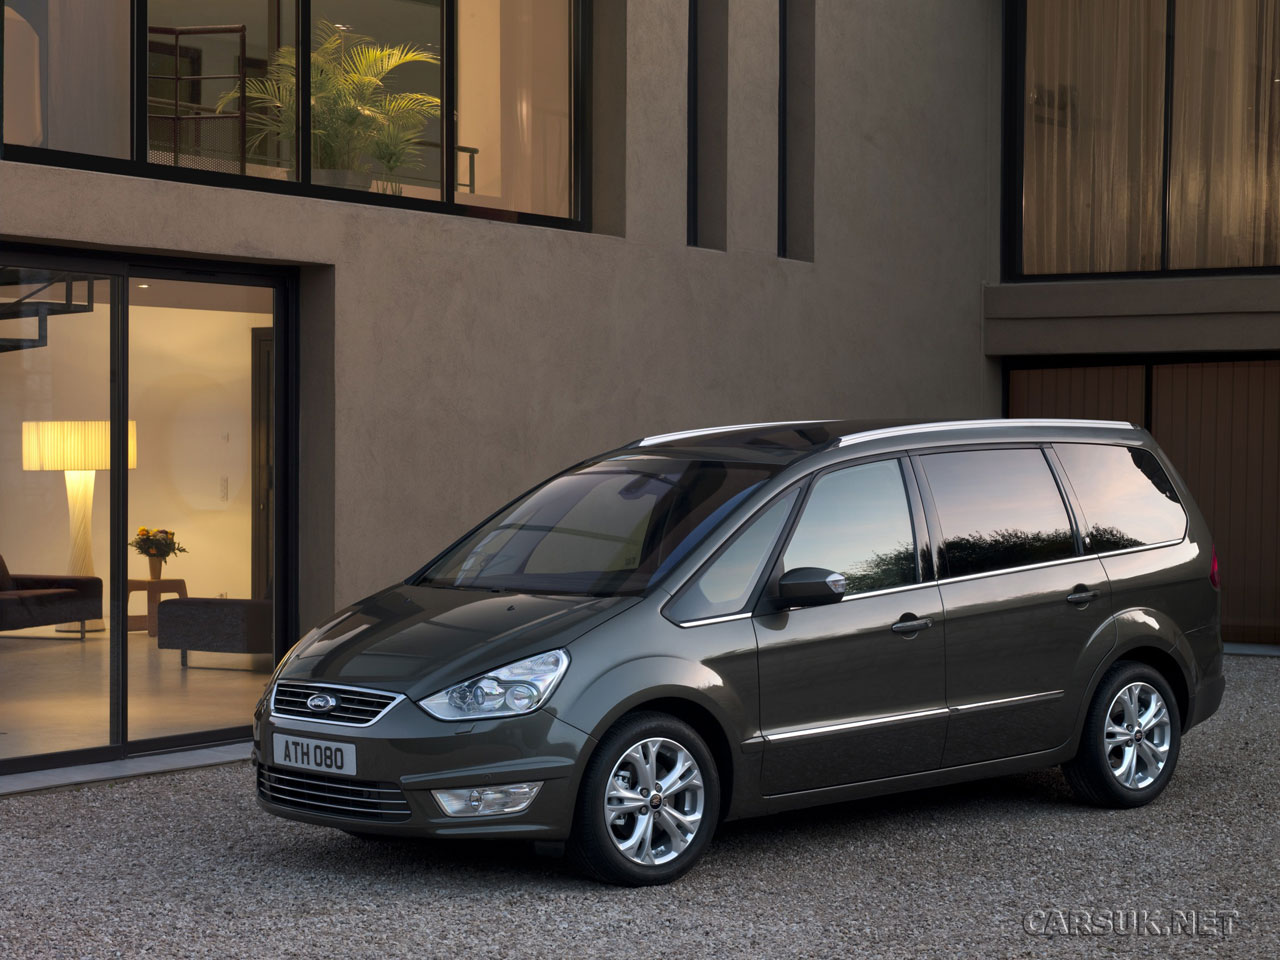 Ford S-Max 2010 and Ford Galaxy 2010 revealed